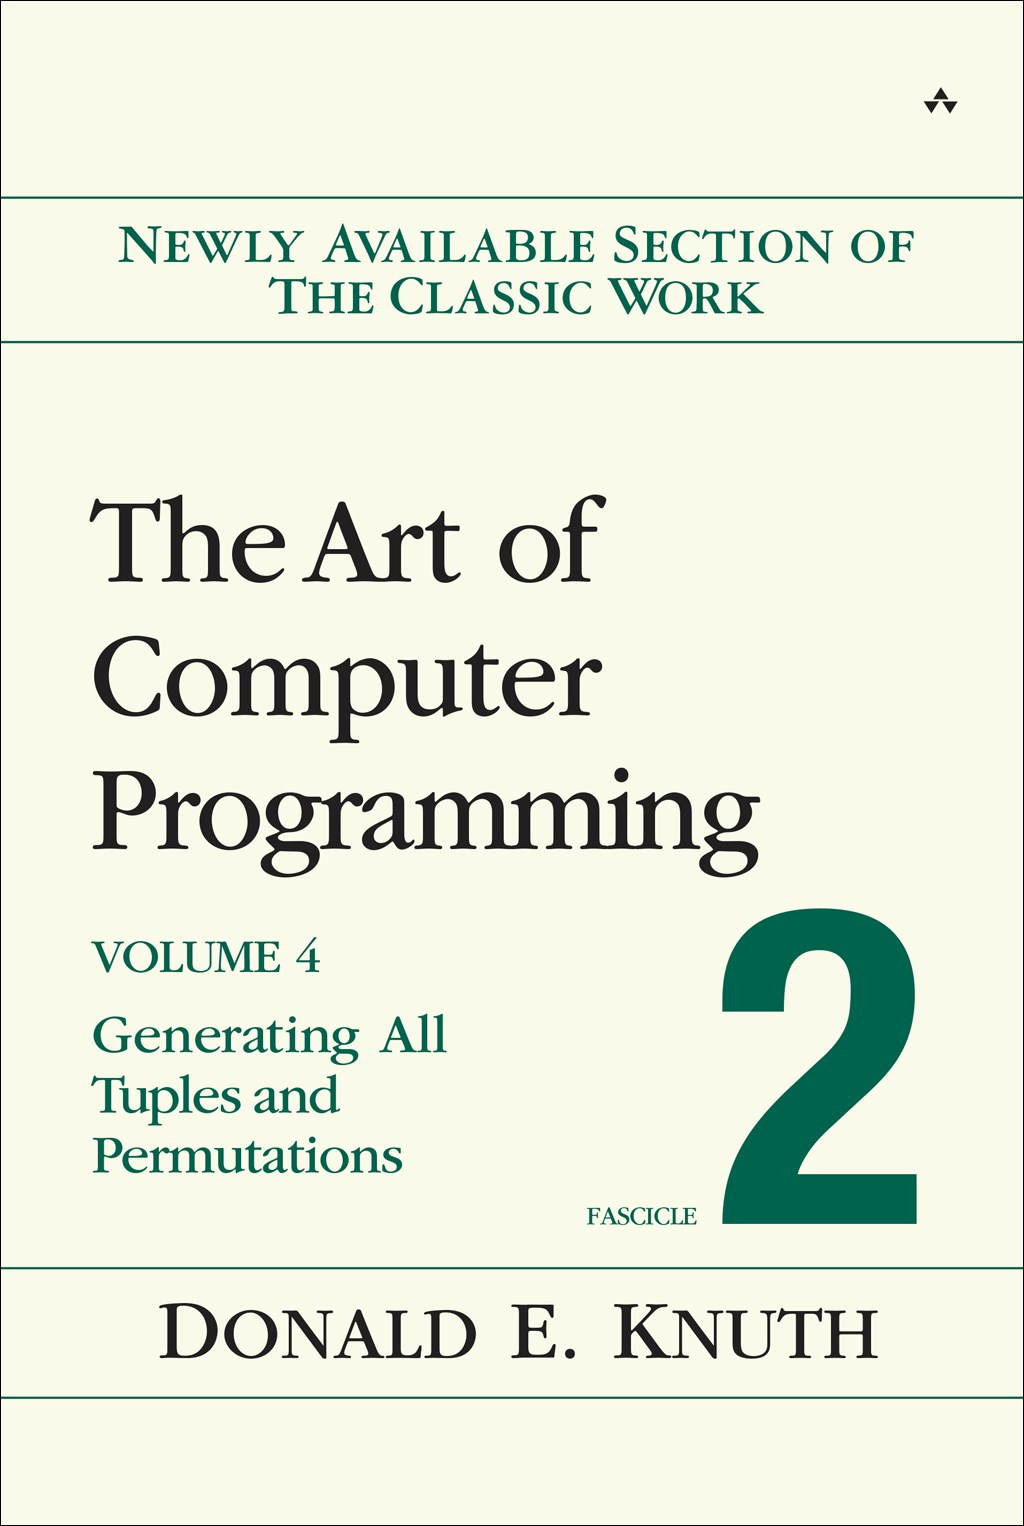 Art of Computer Programming, Volume 4, Fascicle 2, The: Generating All Tuples and Permutations